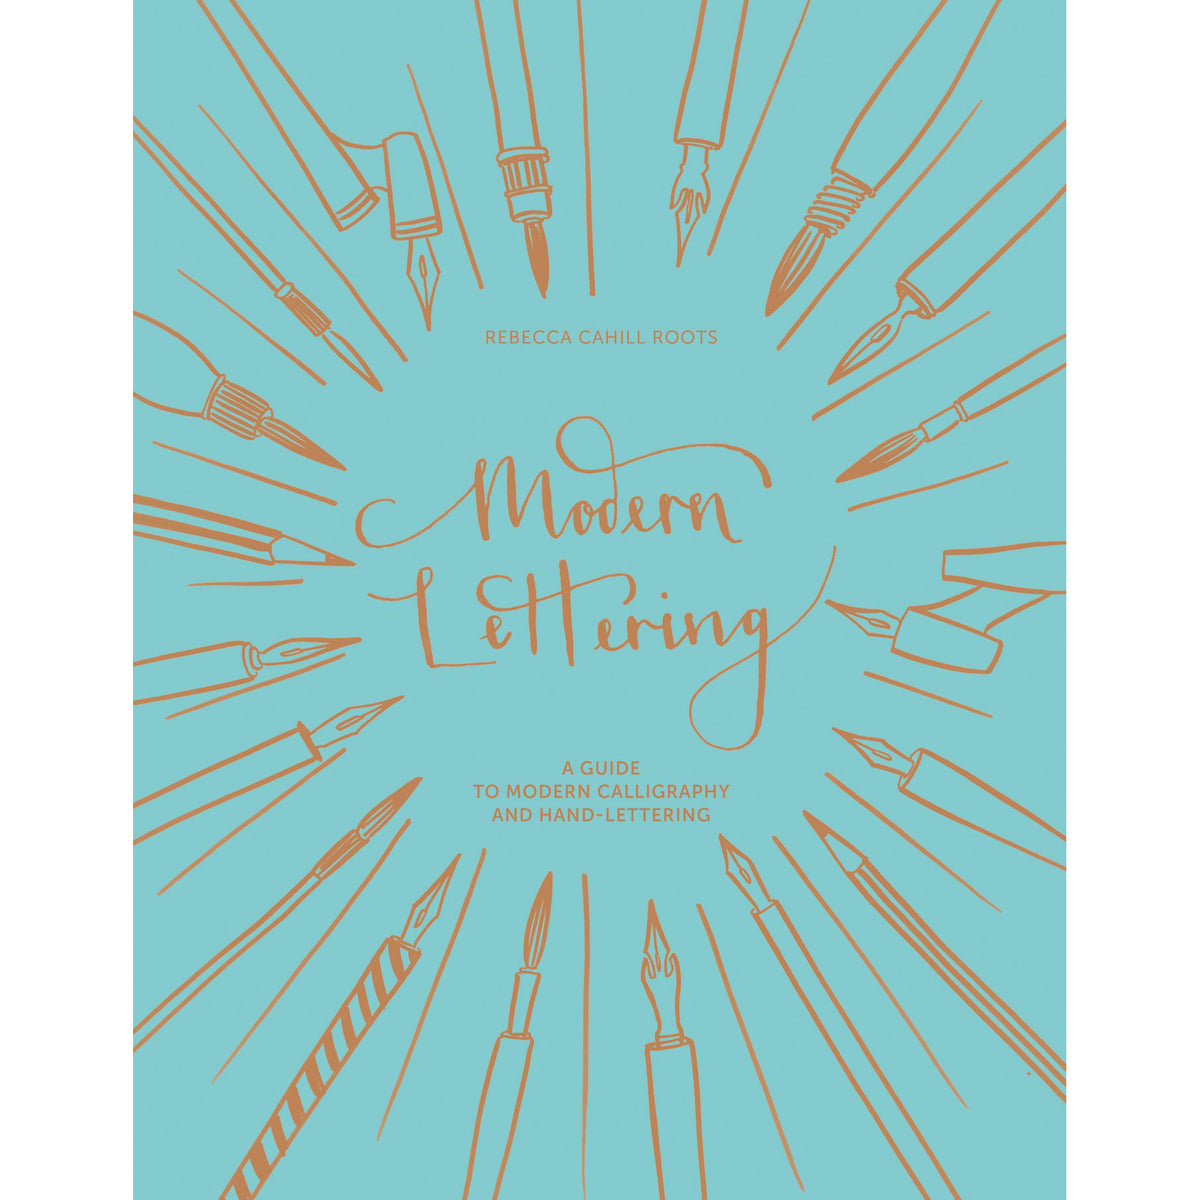 Cover of Modern Lettering by Rebecca Cahill Roots